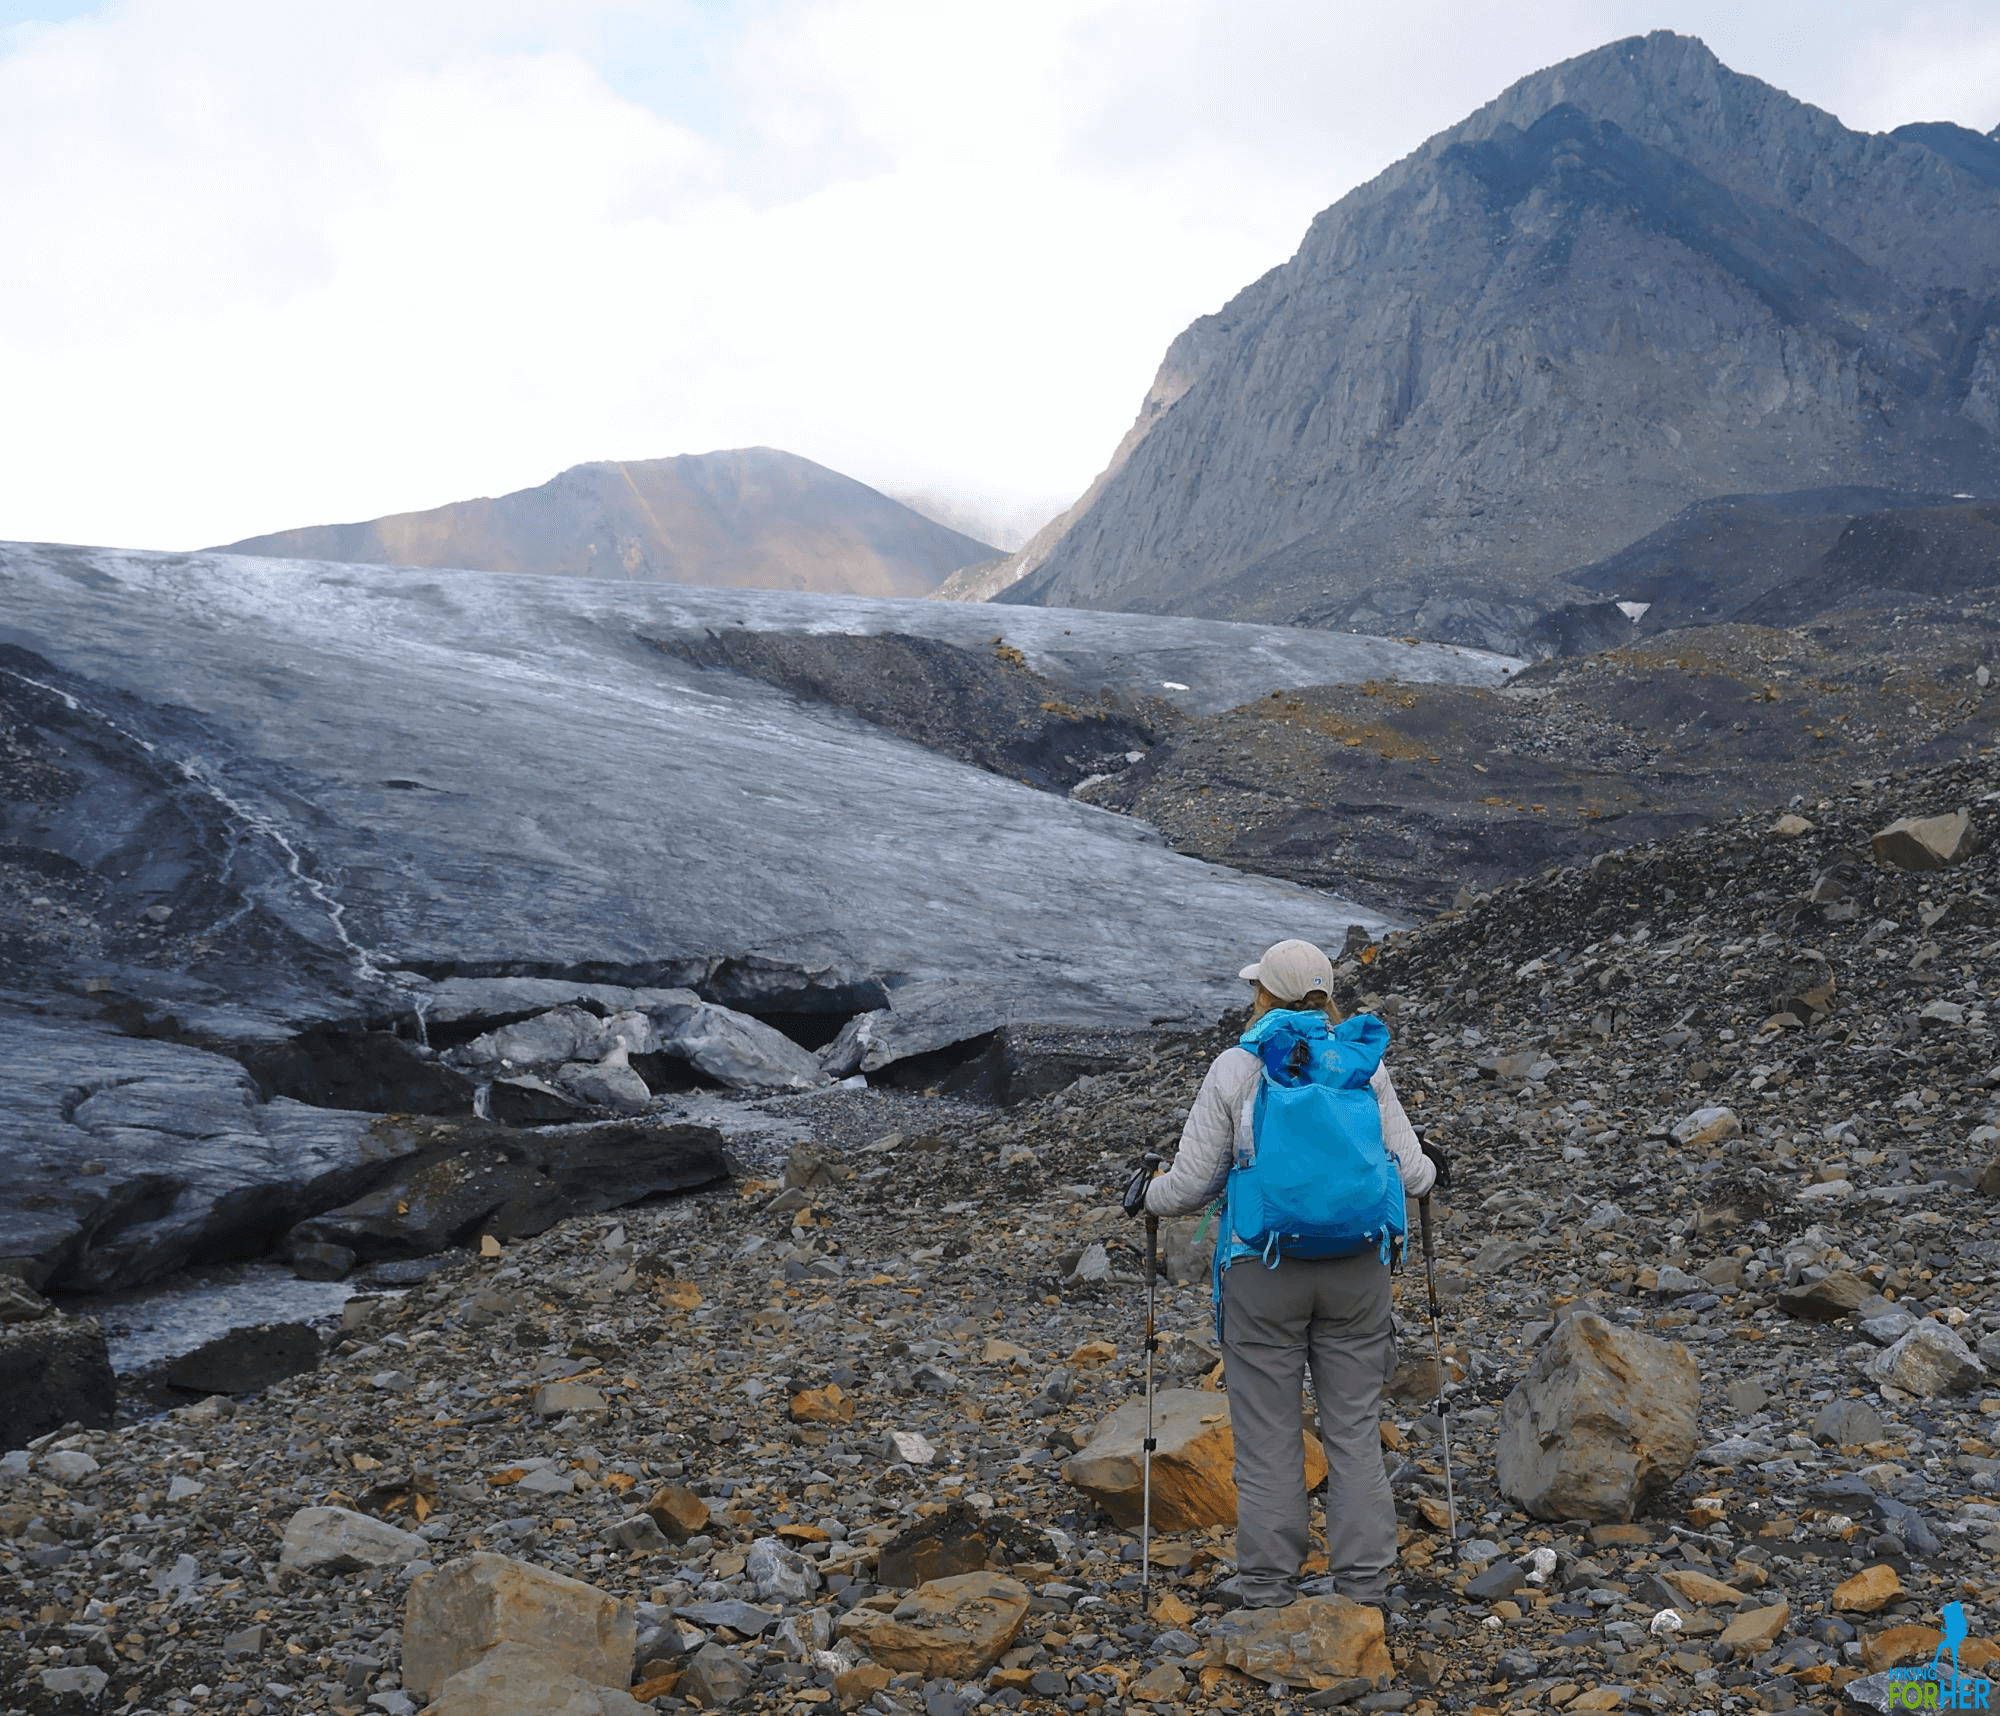 Female hiker wearing blue backpack and carrying trekking poles on a hike along a glacier